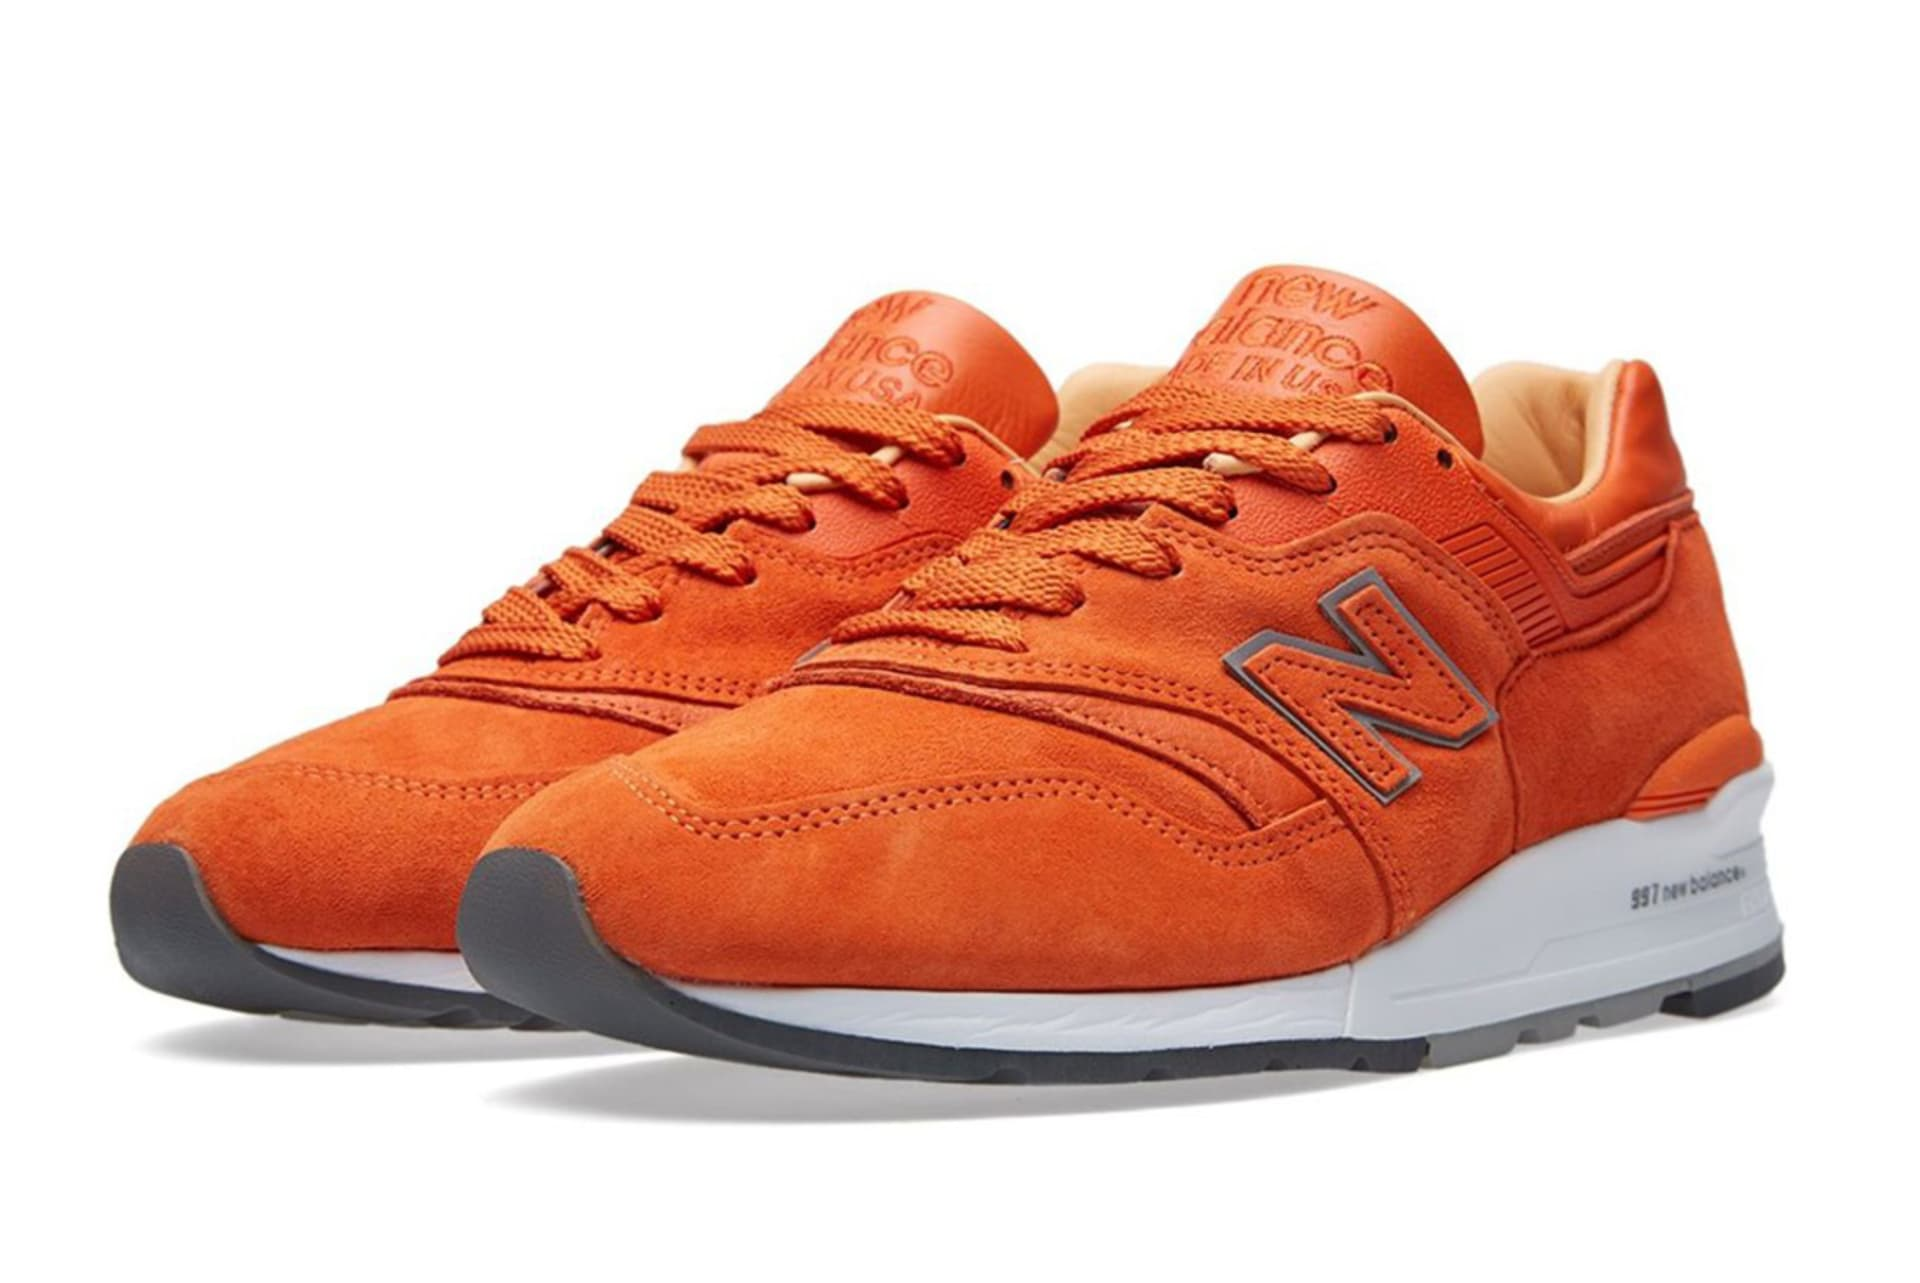 2779a969ab22 Concepts x New Balance 997